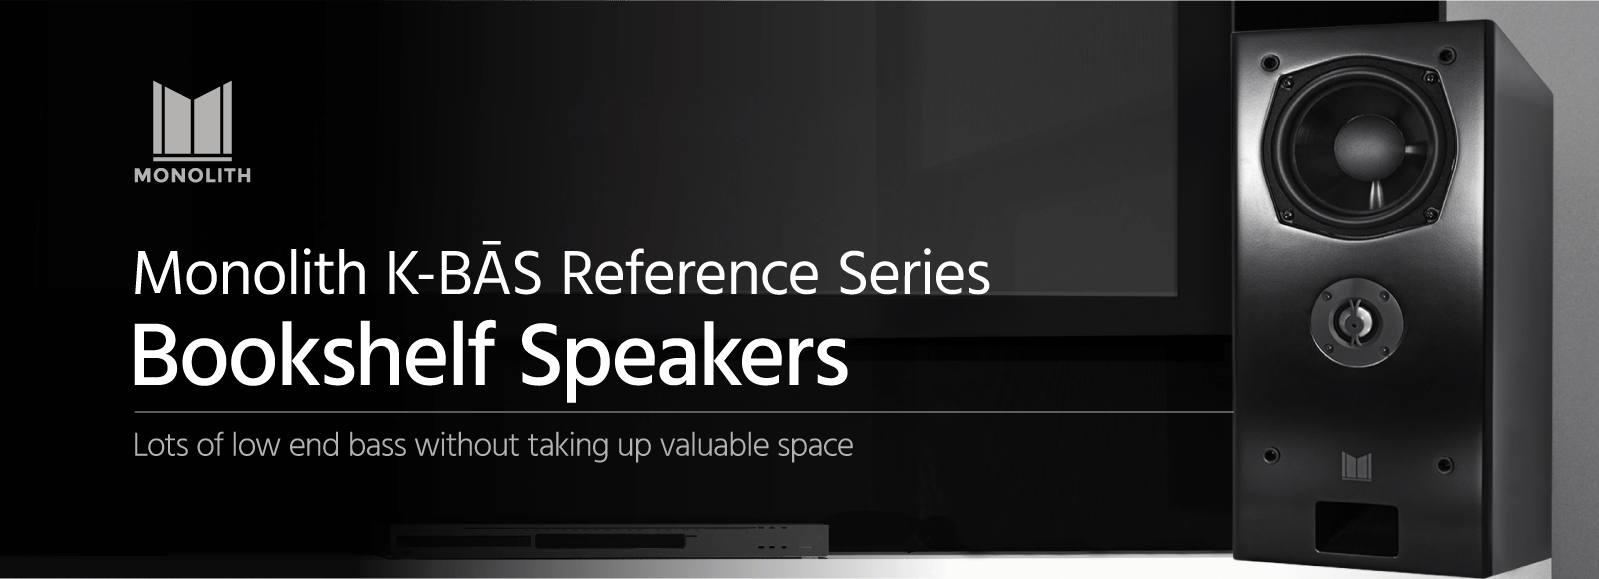 K-BAS Reference Series Bookshelf Speakers